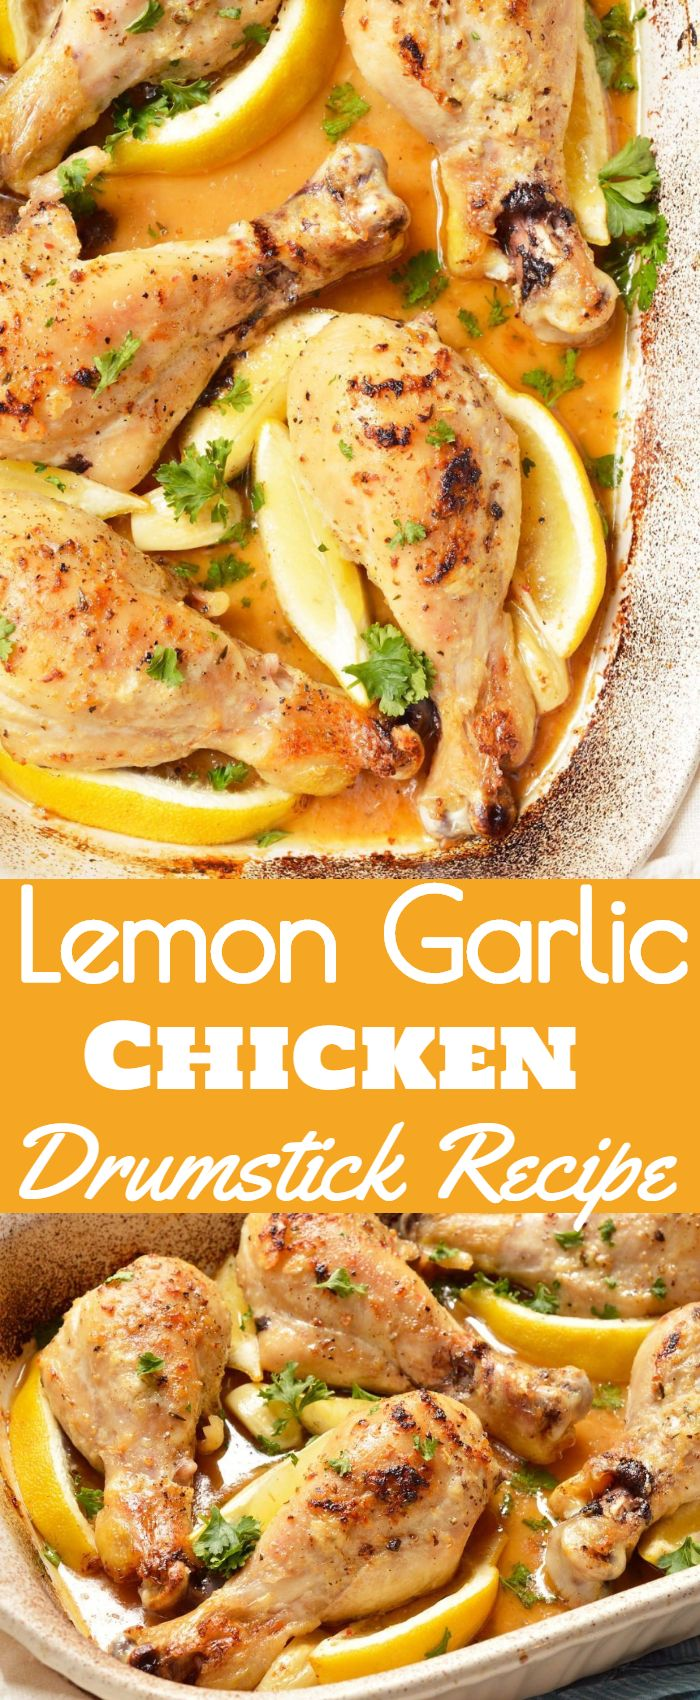 Lemon Garlic Chicken Drumstick Recipe